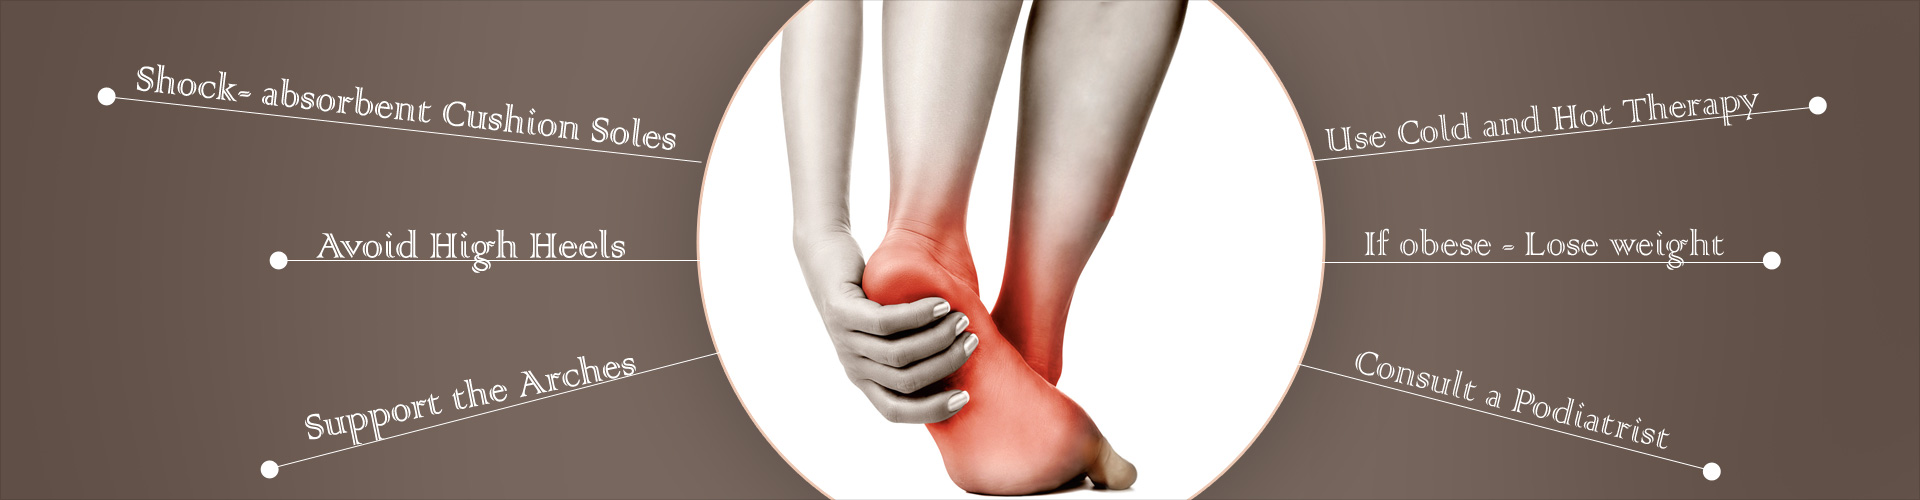 Heel Pain - Symptom Evaluation - Causes, Diagnosis, Treatment, Helth Tips, FAQs